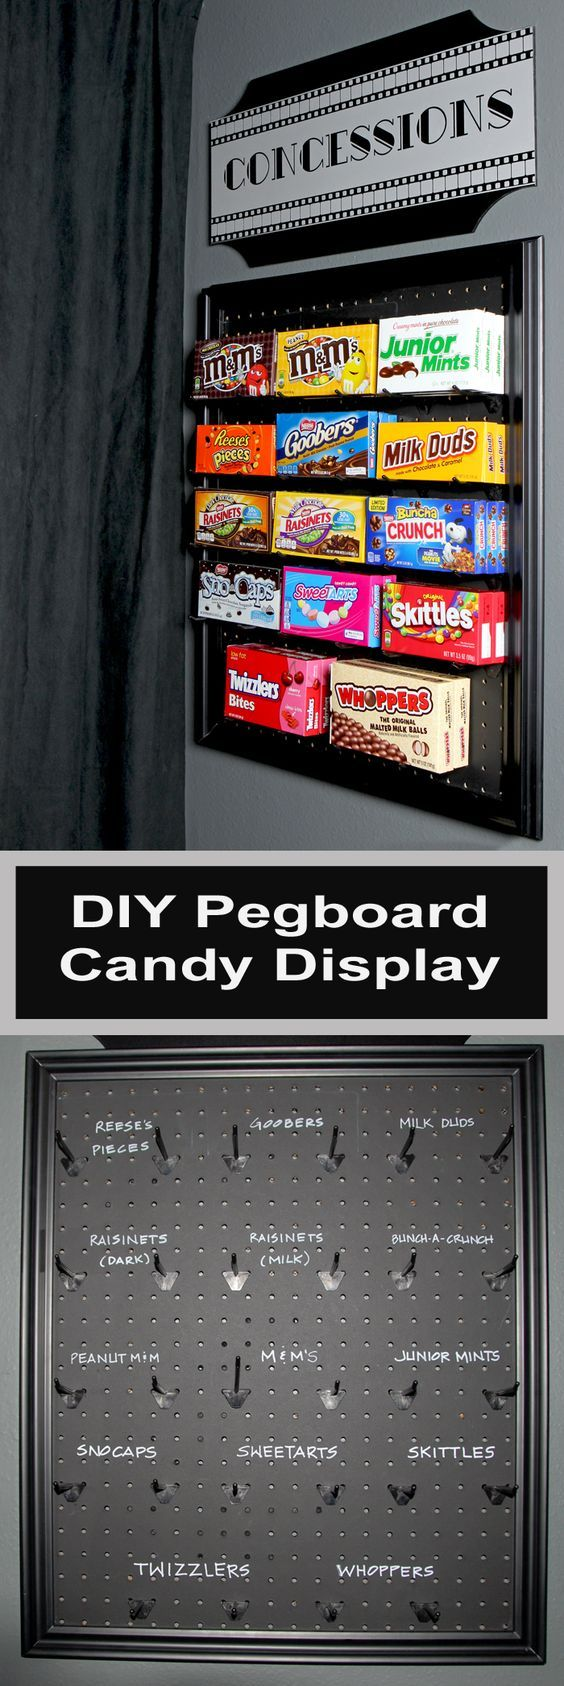 DIY Pegboard Candy Display | Buzz Inspired http://hubz.info/92/spaghetti-with-smoky-tomato-%26-seafood-sauce